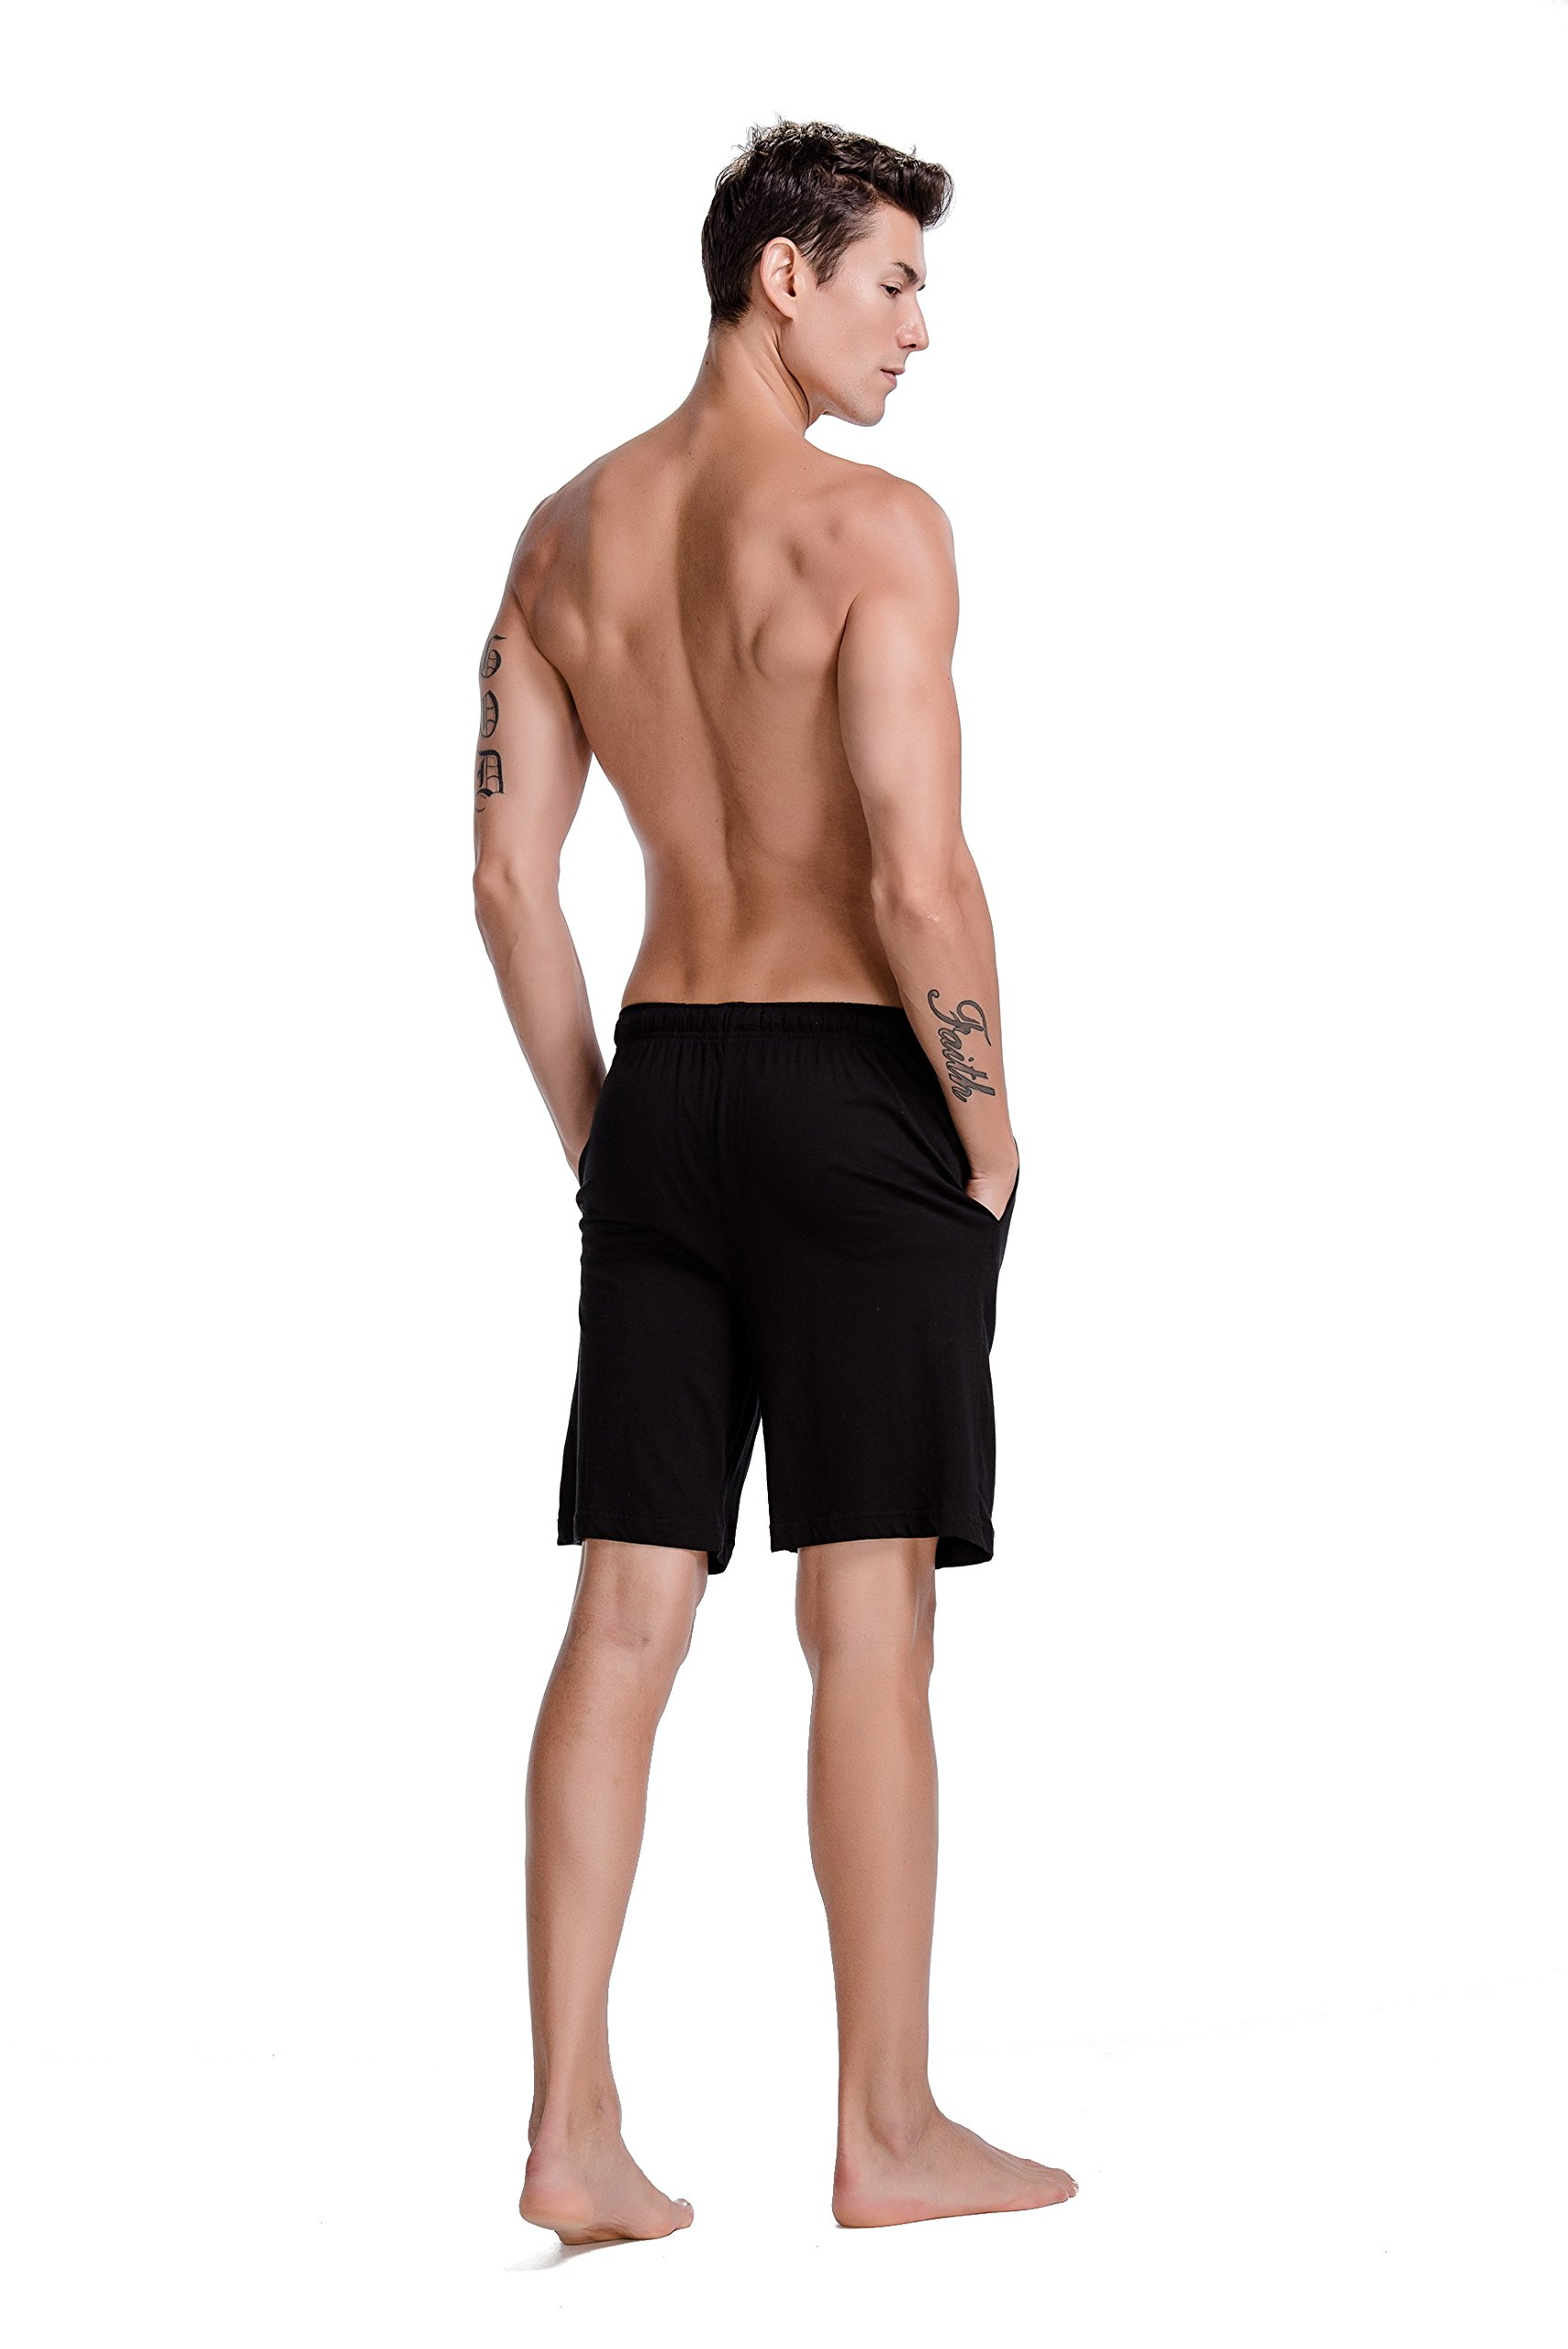 CYZ Men's Comfort Cotton Jersey Shorts With Pockets-Black-L by CYZ Collection